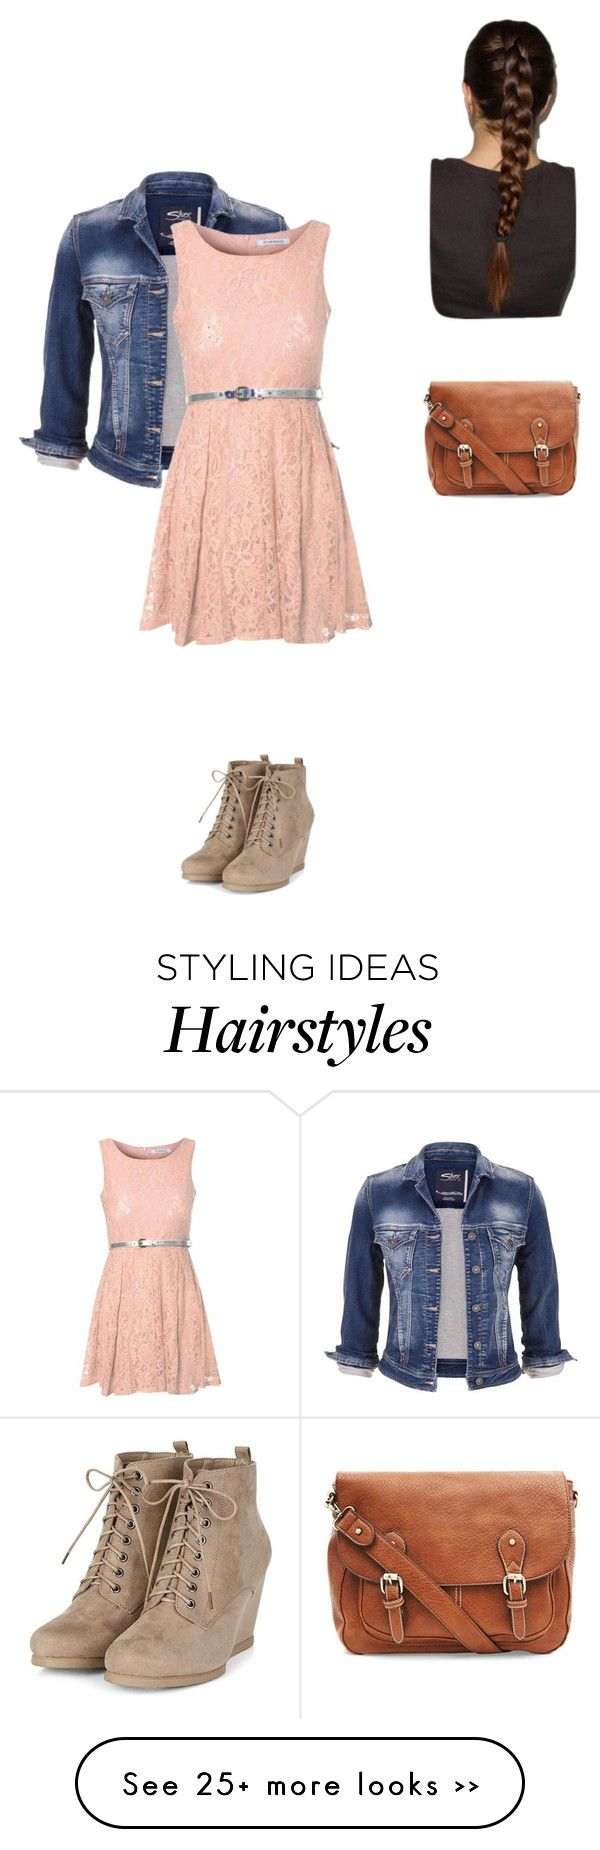 """""""Untitled #117"""" by dimlkr on Polyvore featuring maurices and Glamorous                                                                                                                                                     More"""